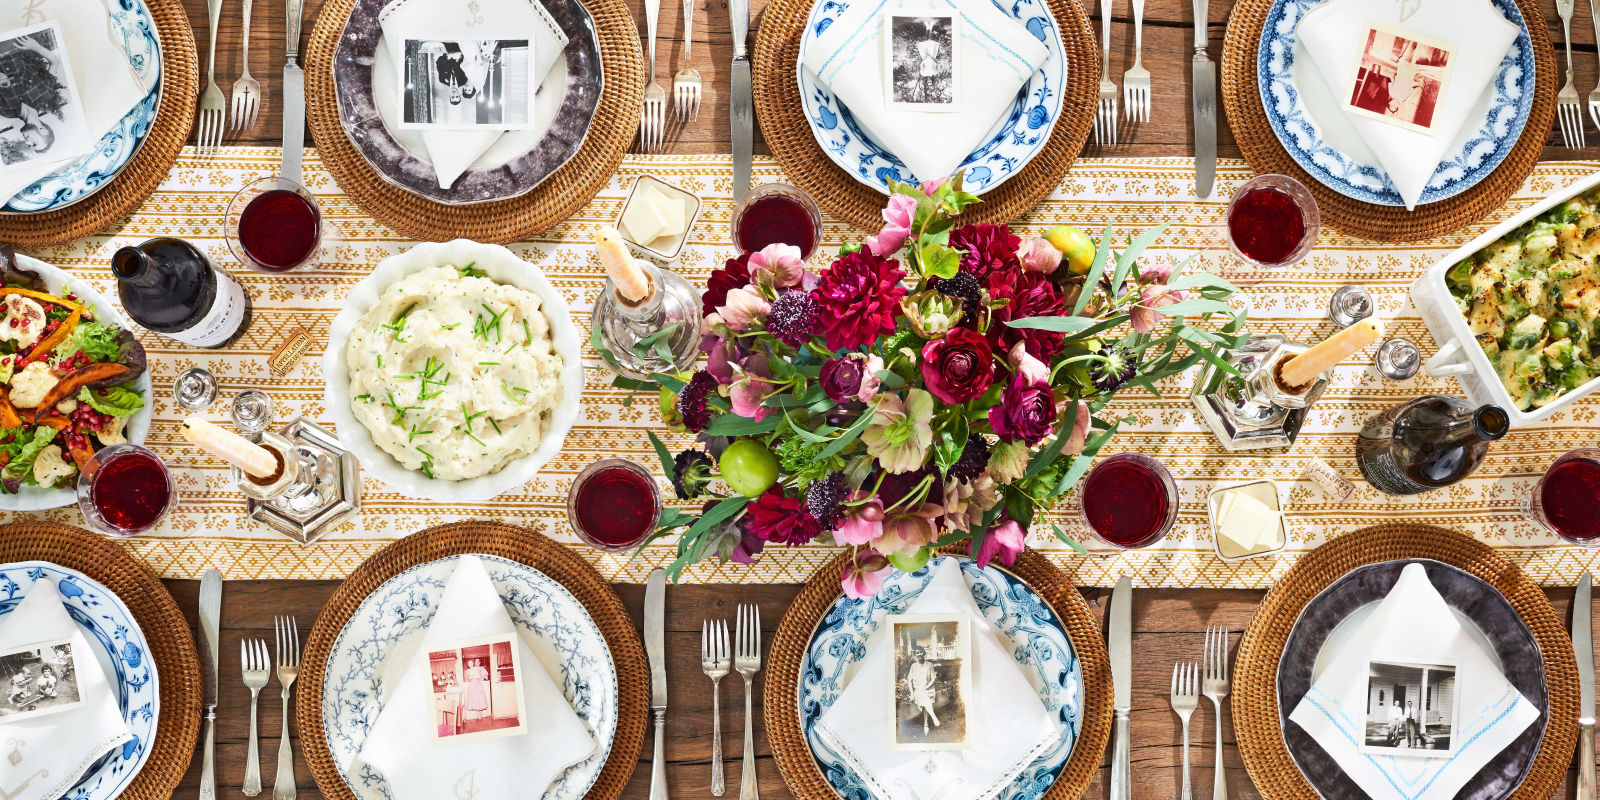 40 thanksgiving table settings thanksgiving tablescapes decoration ideas. Black Bedroom Furniture Sets. Home Design Ideas